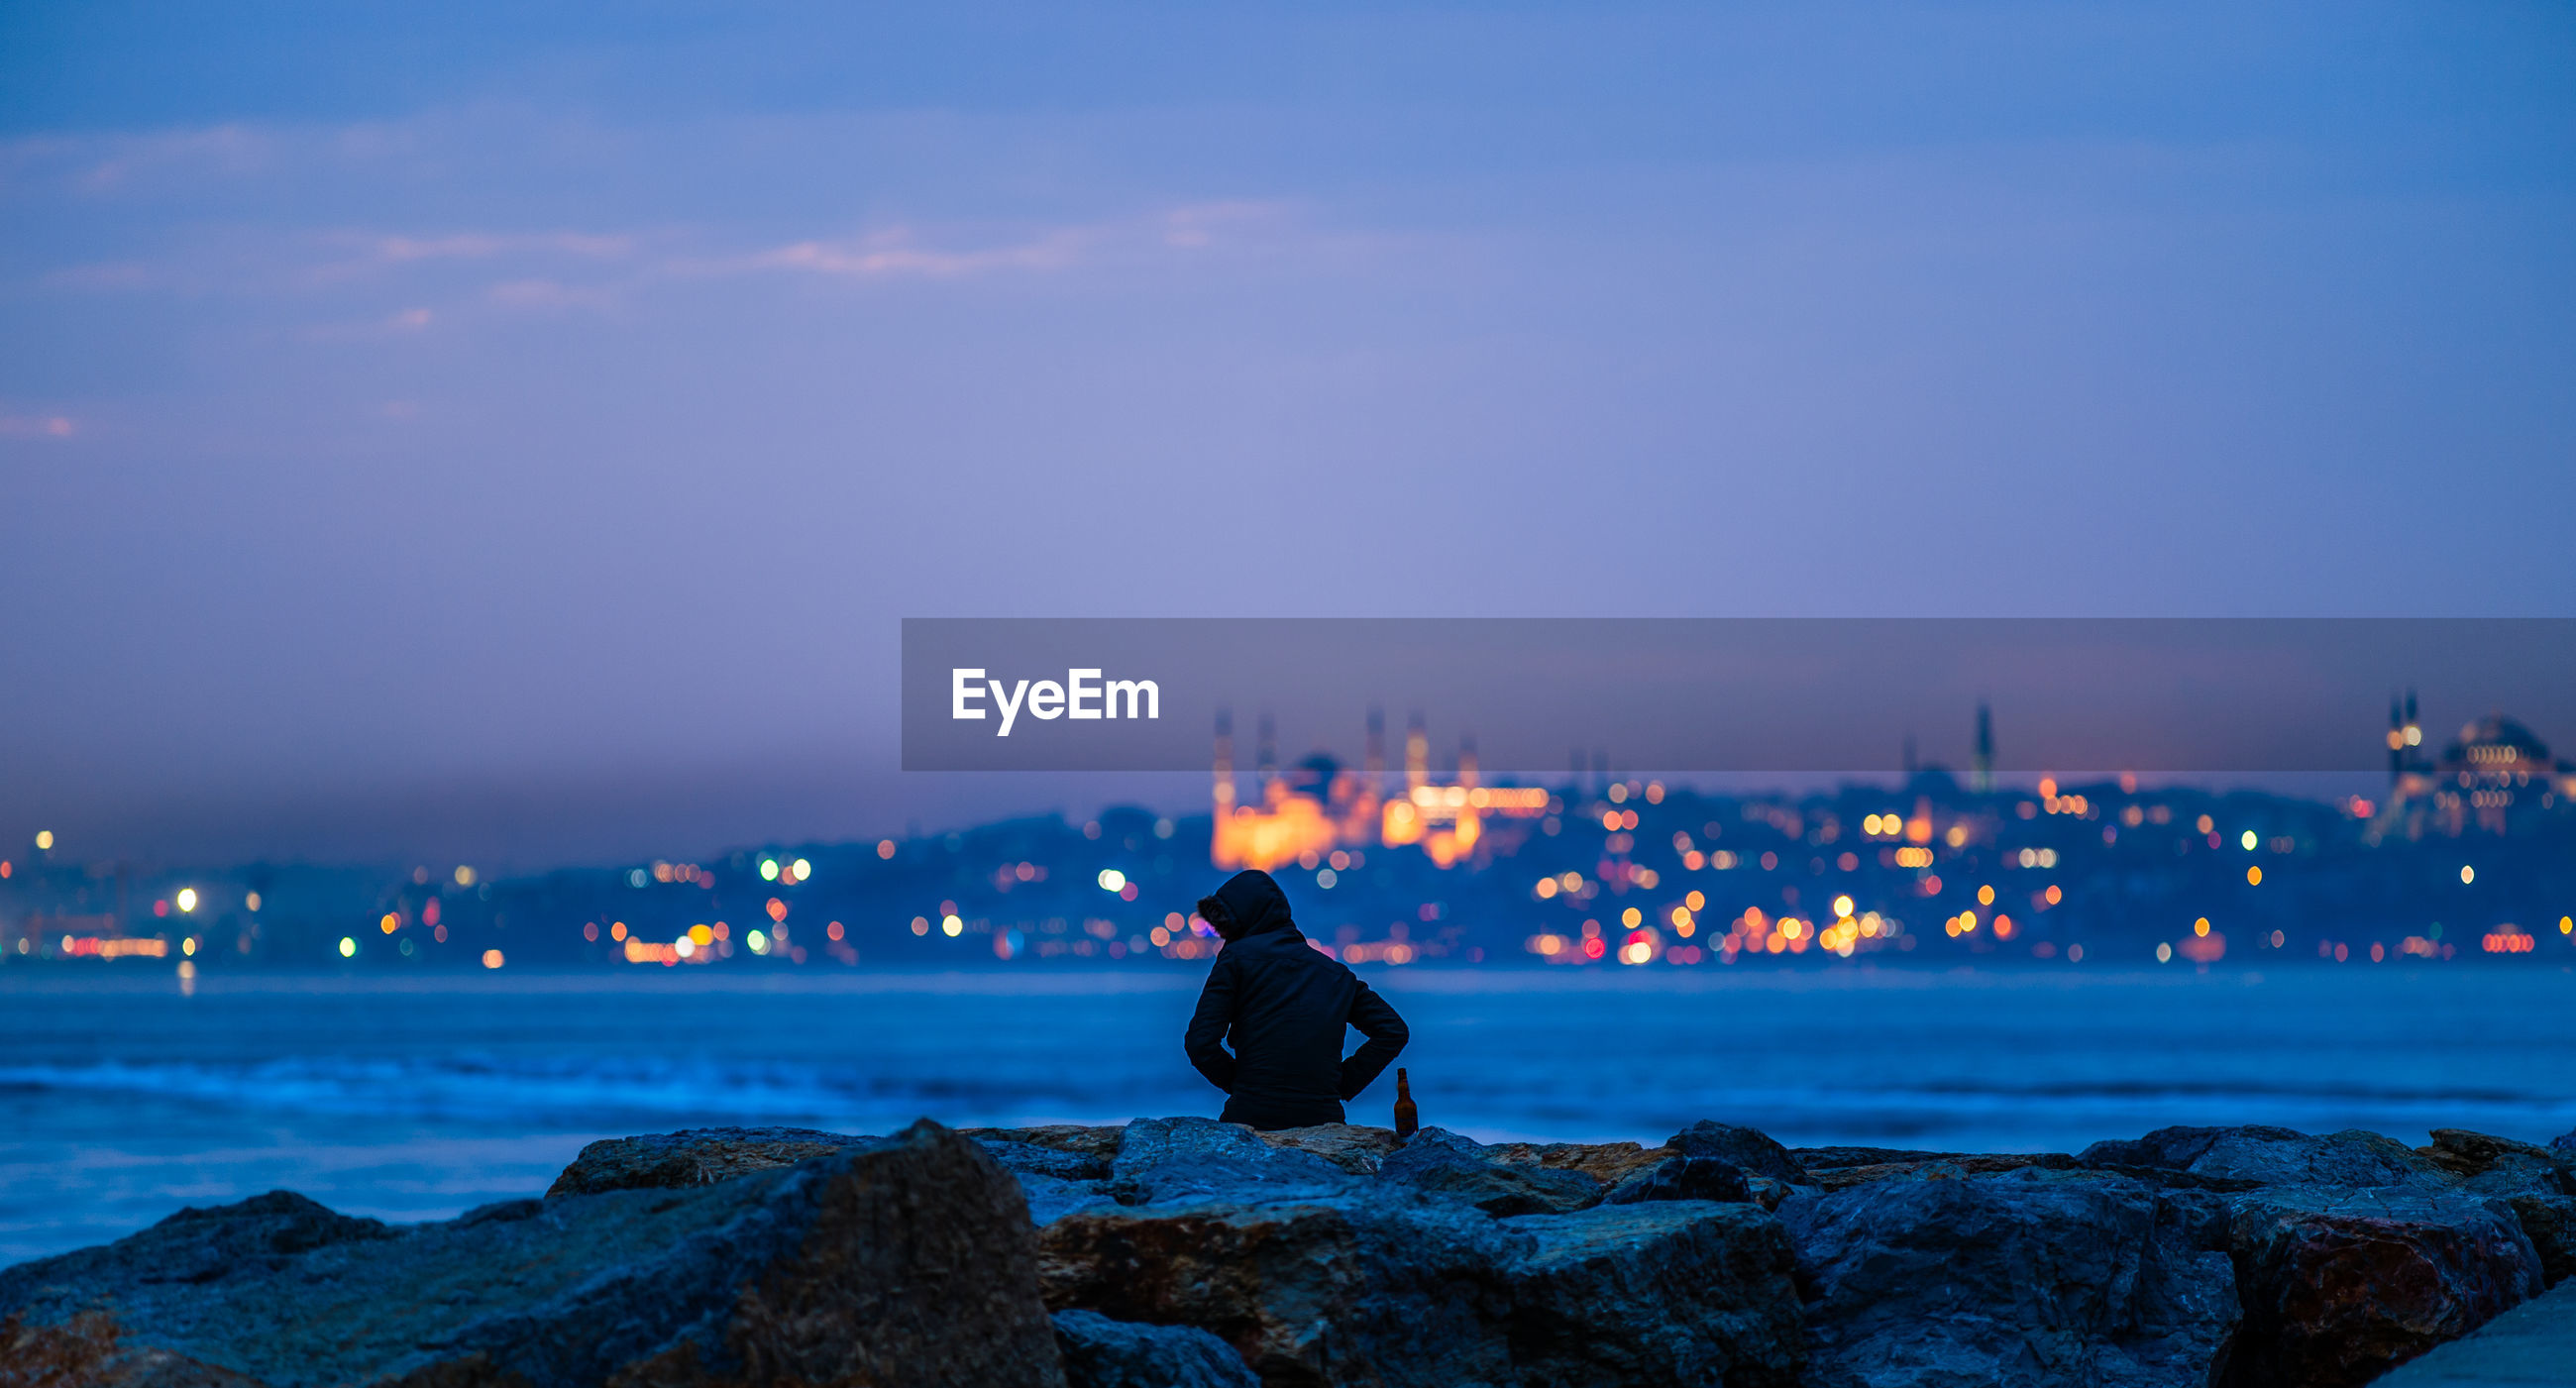 Hooded person sitting at rocky shore against sky at dusk